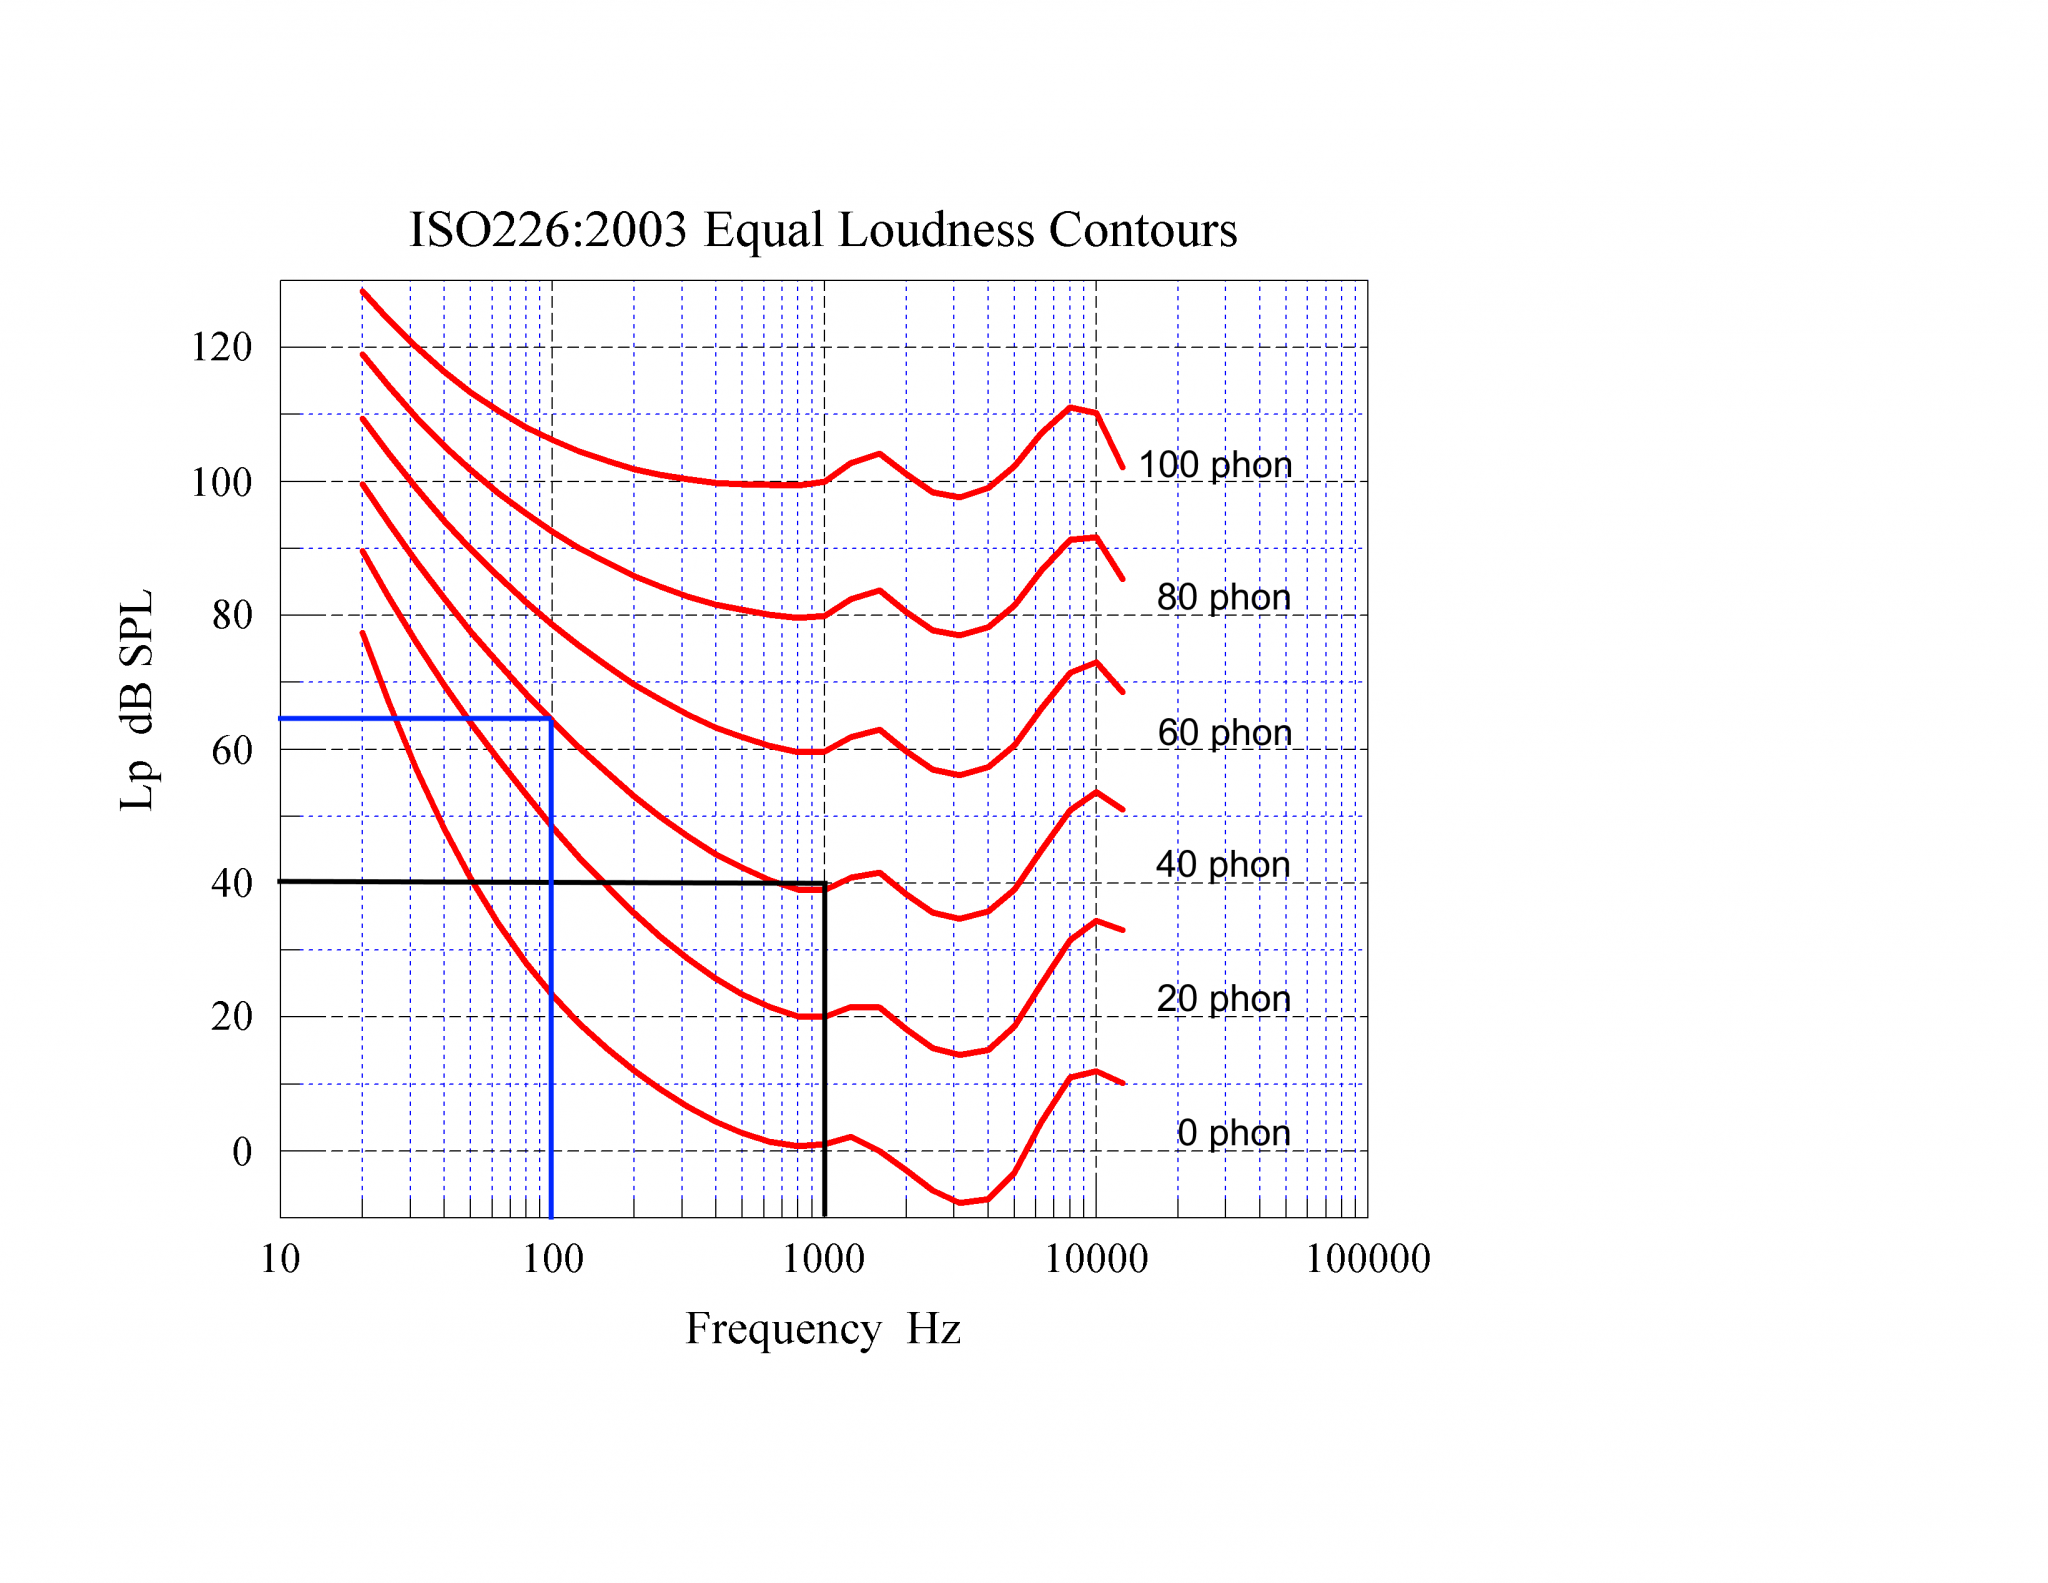 02 iso226-2003 Equal Loudness Contours - 40 phon 100 Hz and 1000 Hz.png